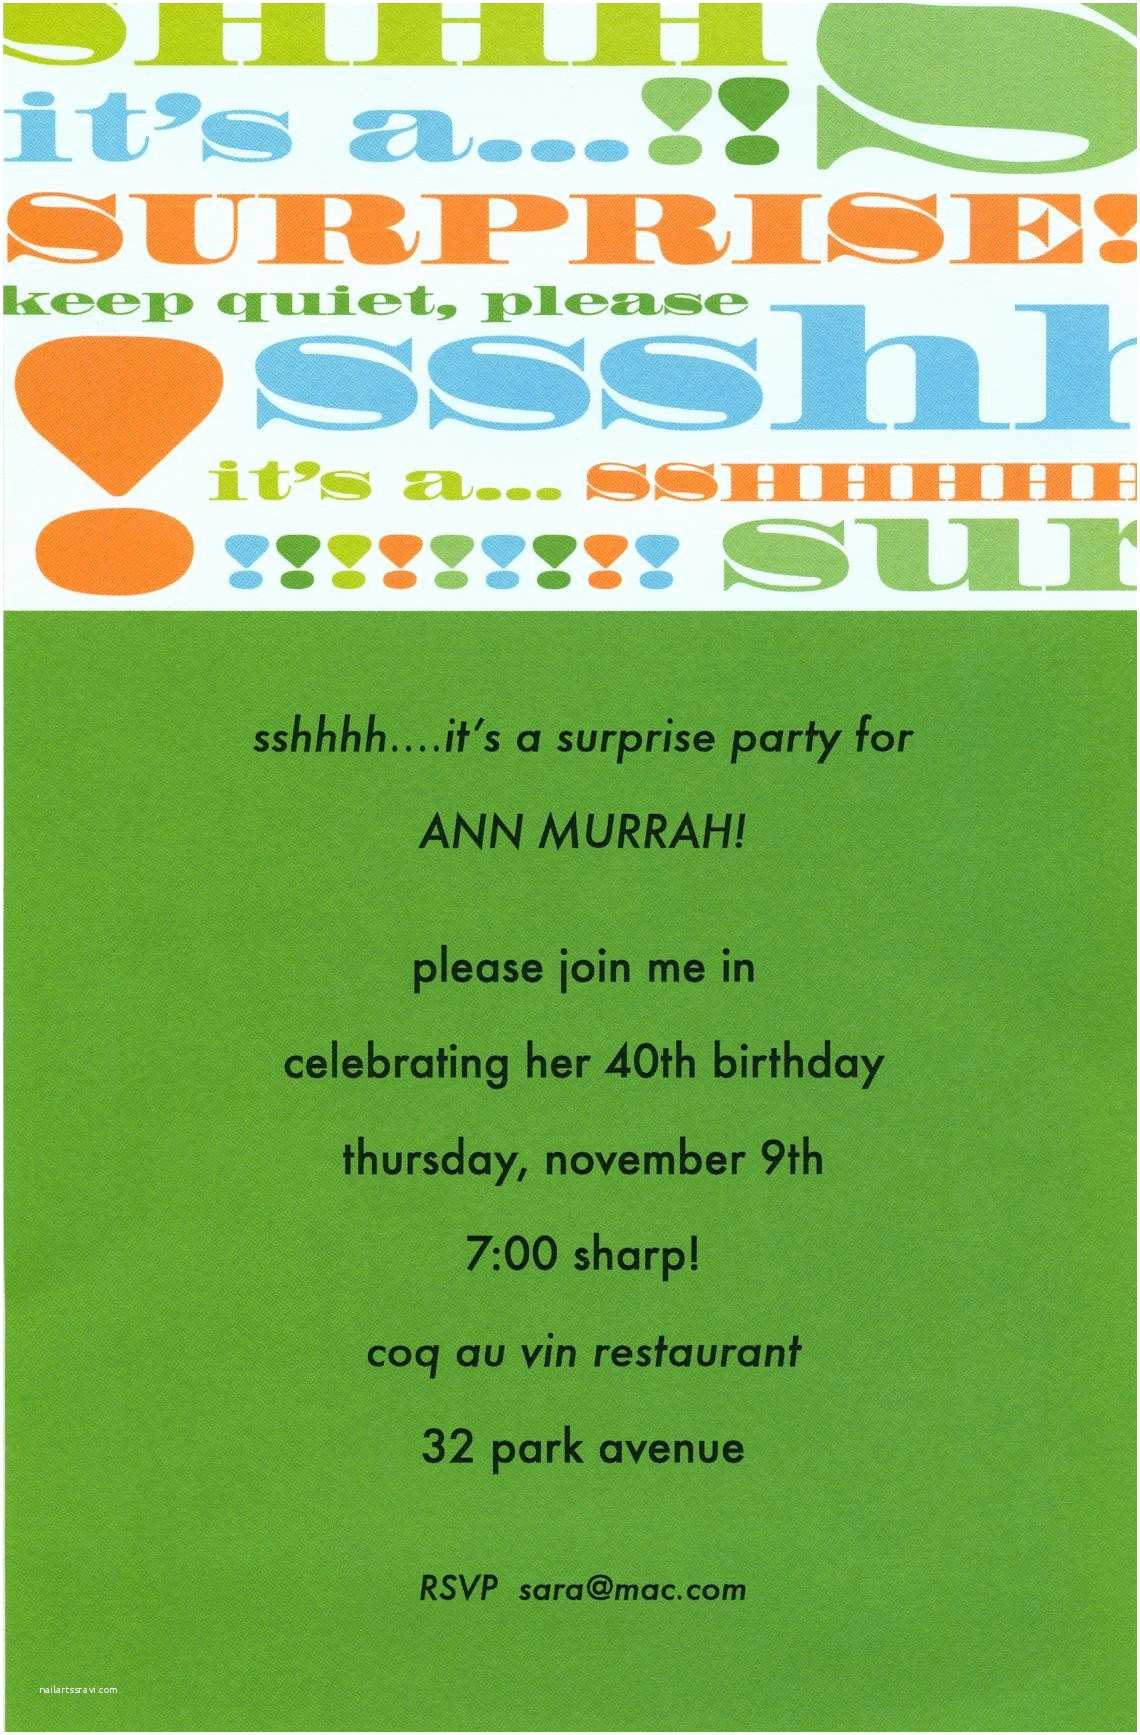 Birthday Party Invitation Message Amazing Surprise Wording